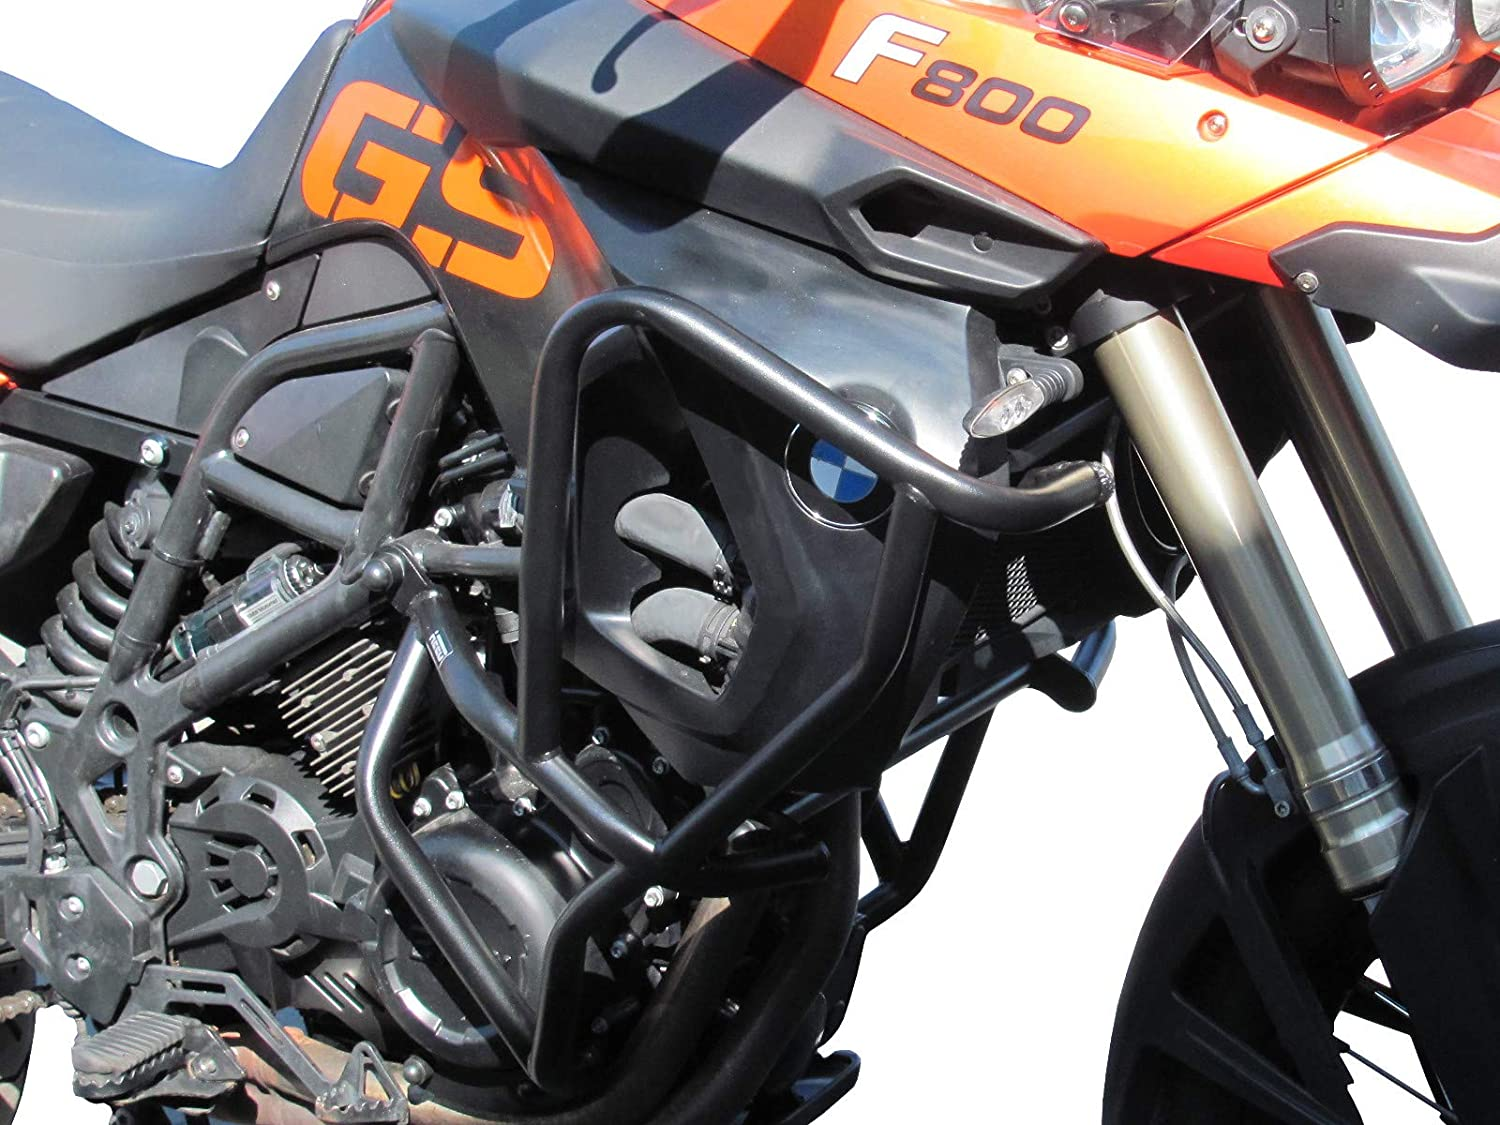 Pare carters HEED F 800 GS (2008-2012) / F 650 GS (2008-2013) Bunker